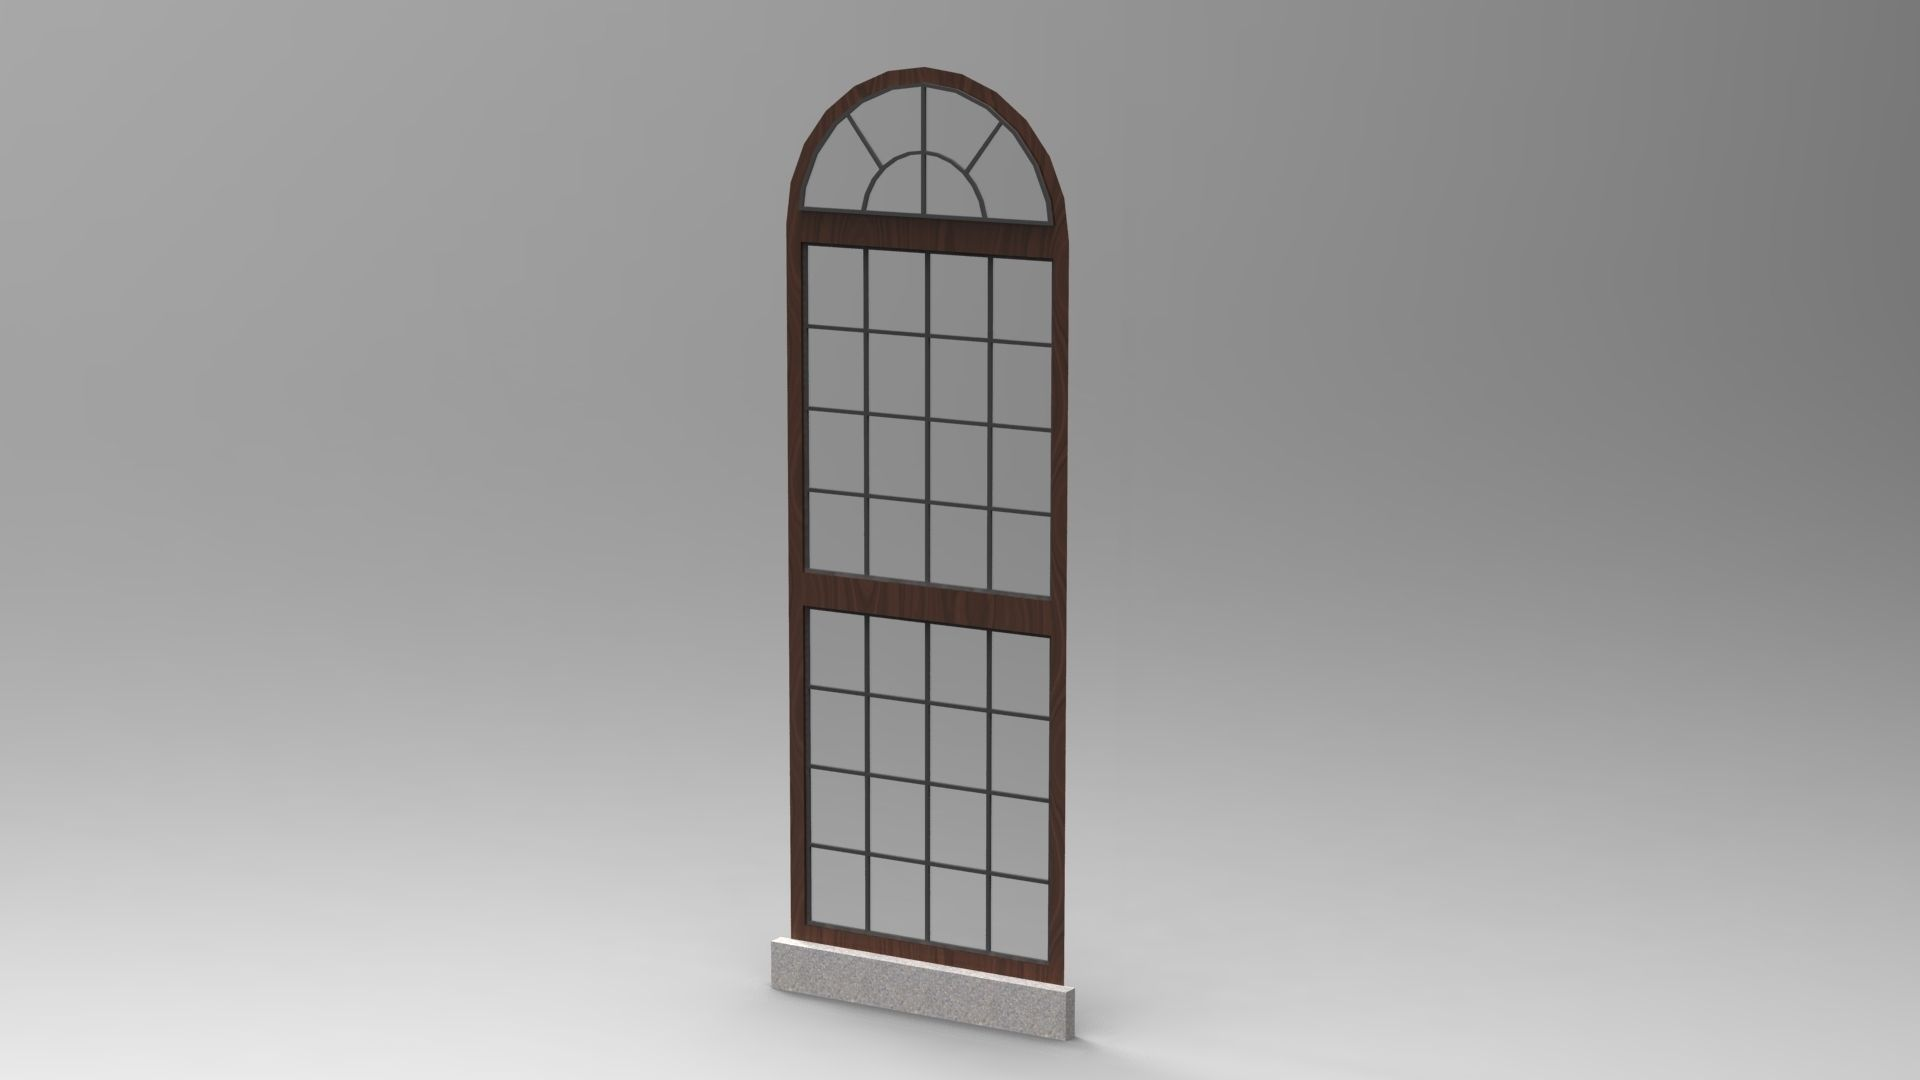 Window design 3 3d model skp for Window 3d model